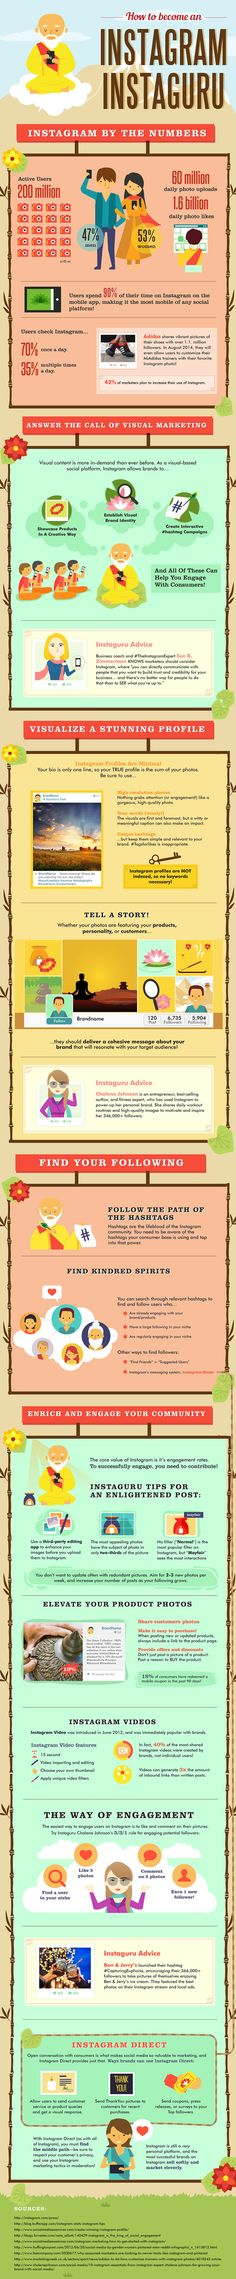 Want to become an Instagram guru? The tips on this infographic will help you maximize your presence and connect with your waiting audience!